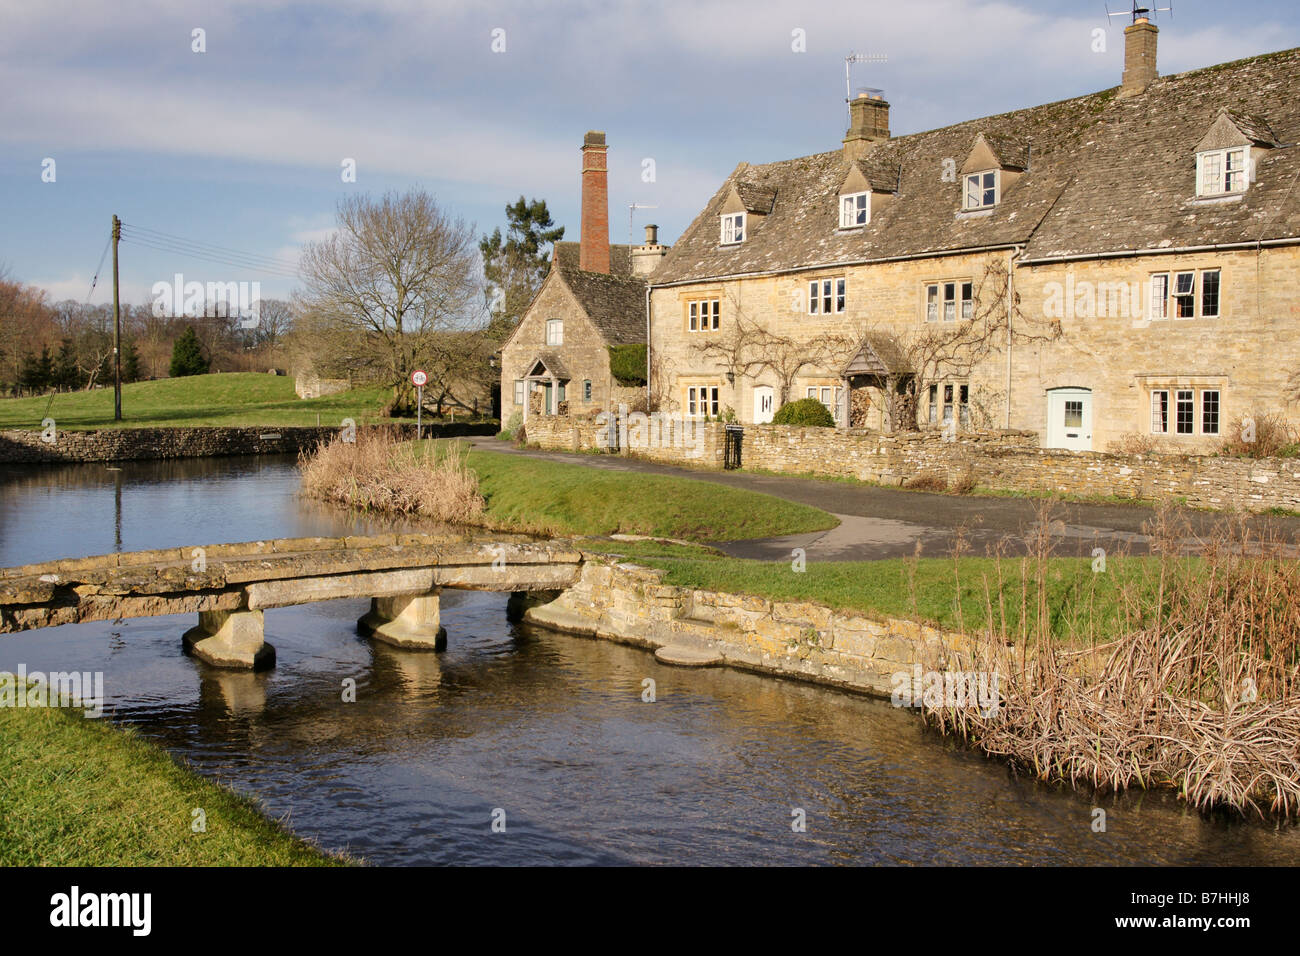 Lower Slaughter Gloucestershire England - Stock Image